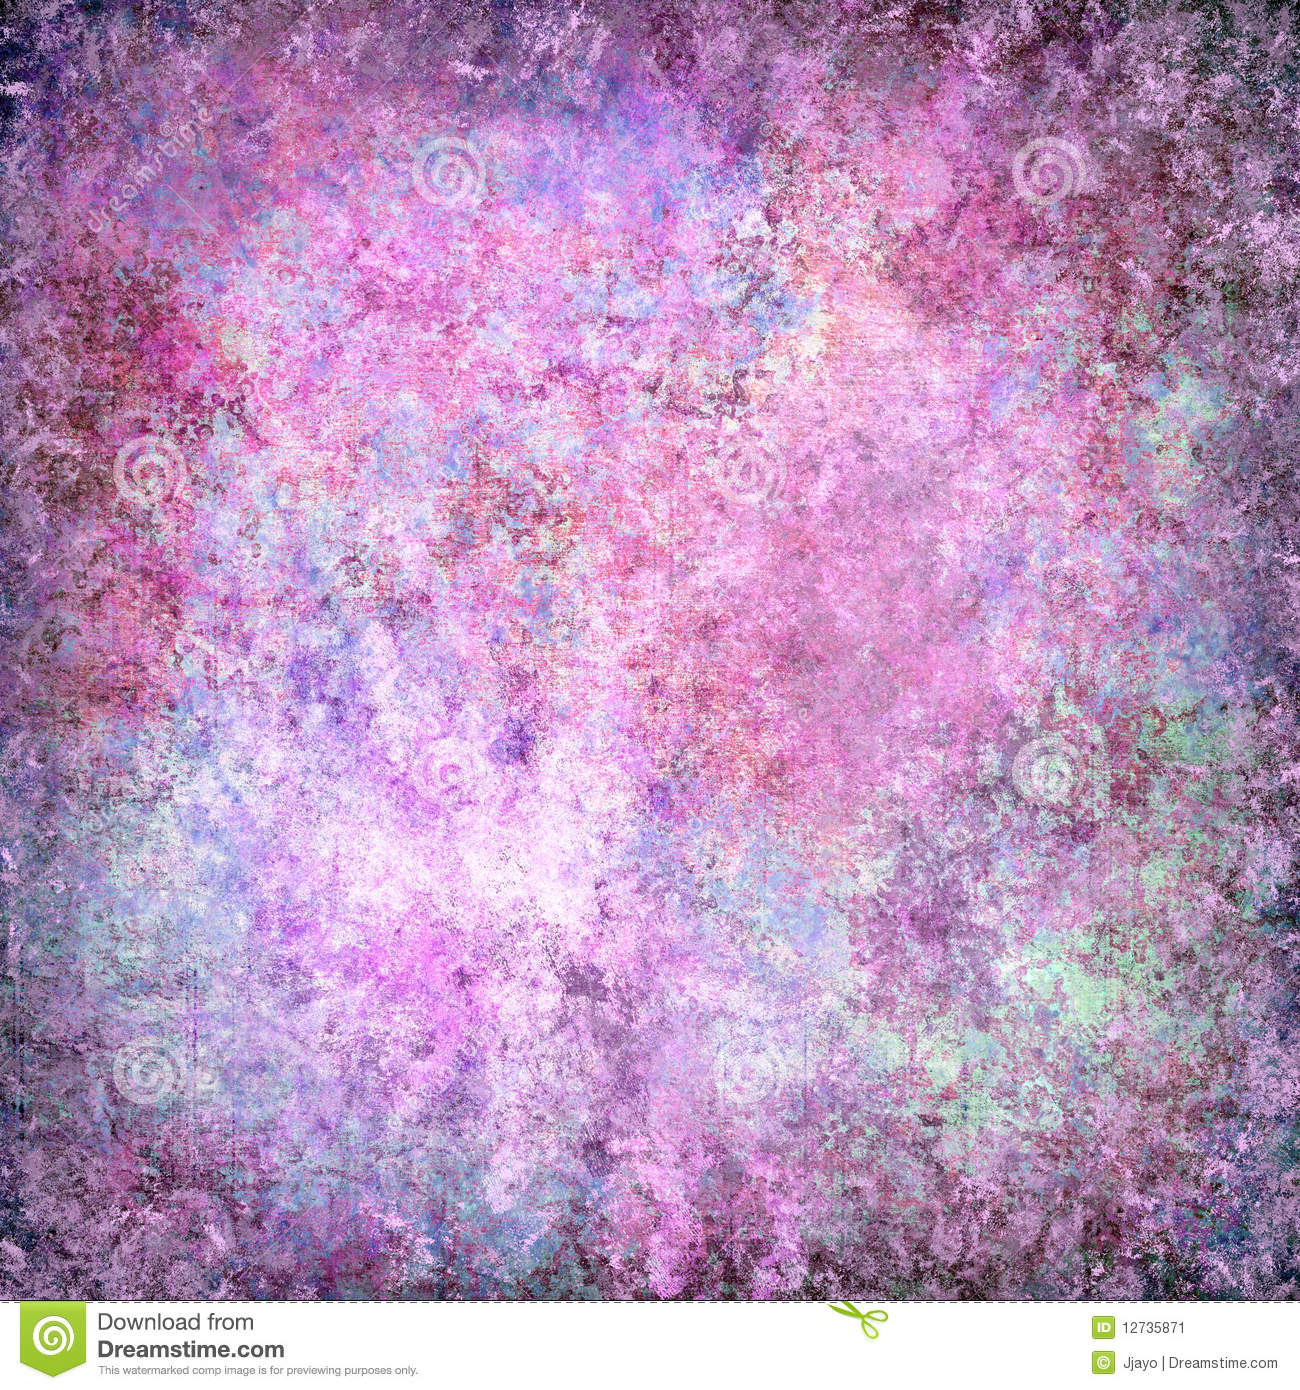 Purple Grunge Textured Abstract Background Stock Image - Image